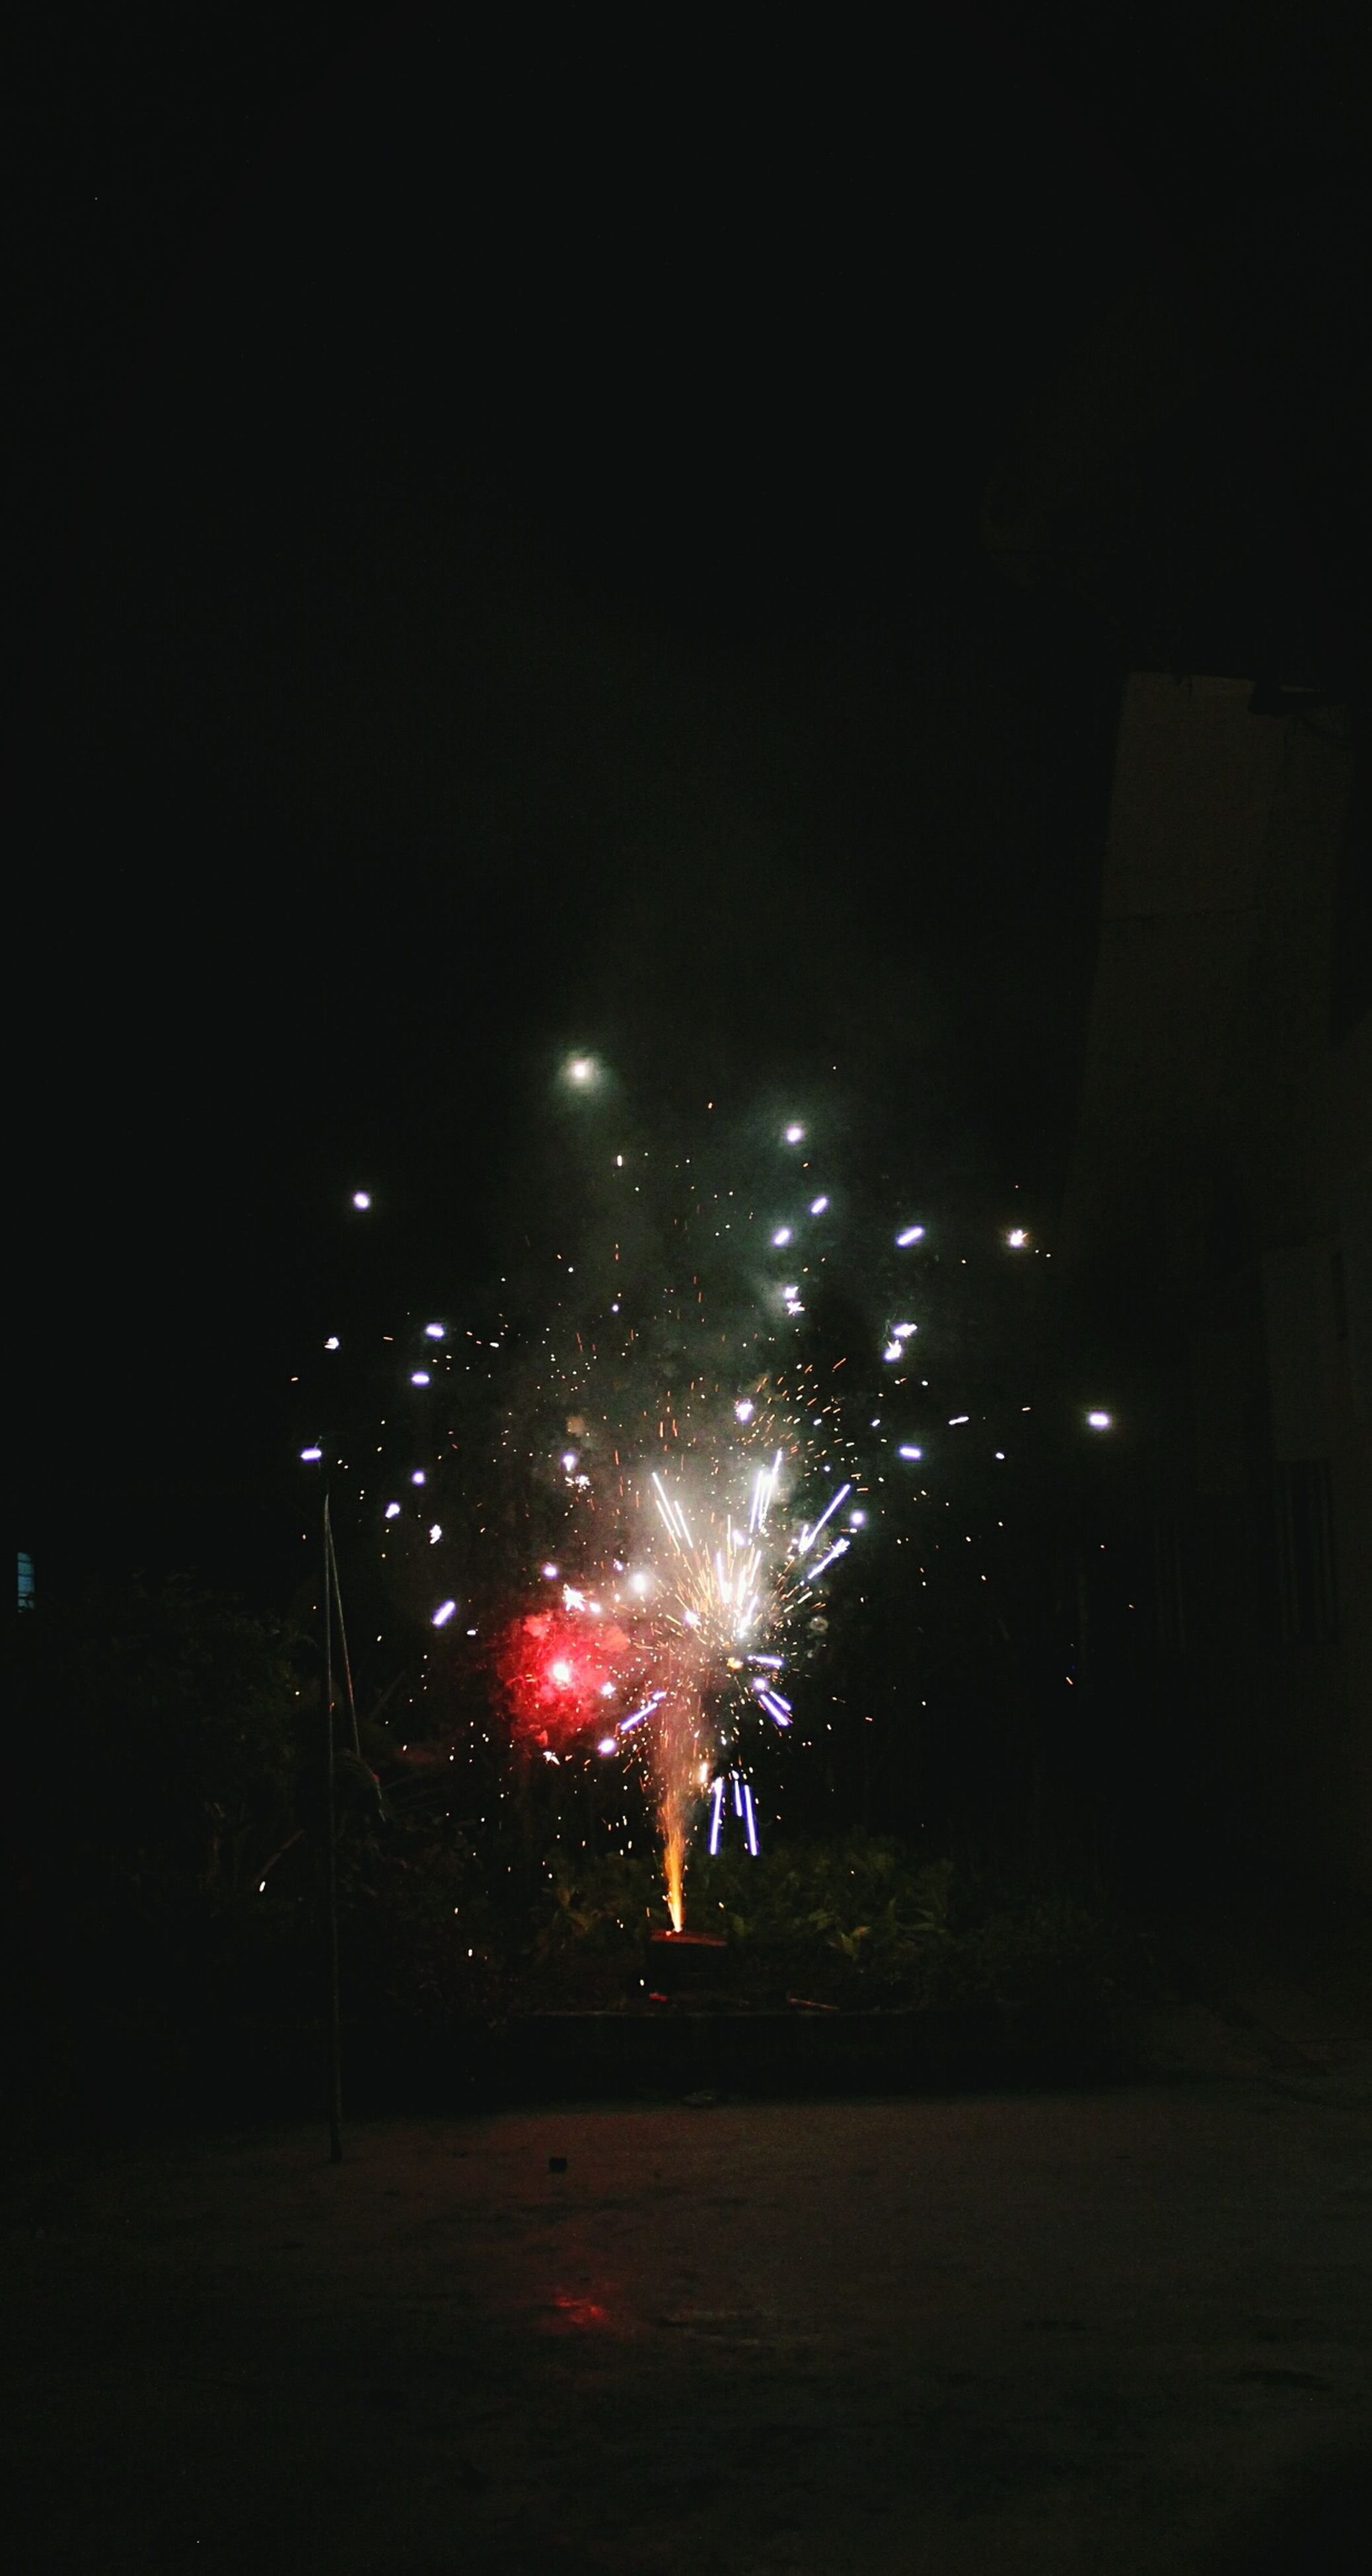 night, illuminated, celebration, firework - man made object, firework display, arts culture and entertainment, exploding, city, multi colored, no people, outdoors, sky, firework